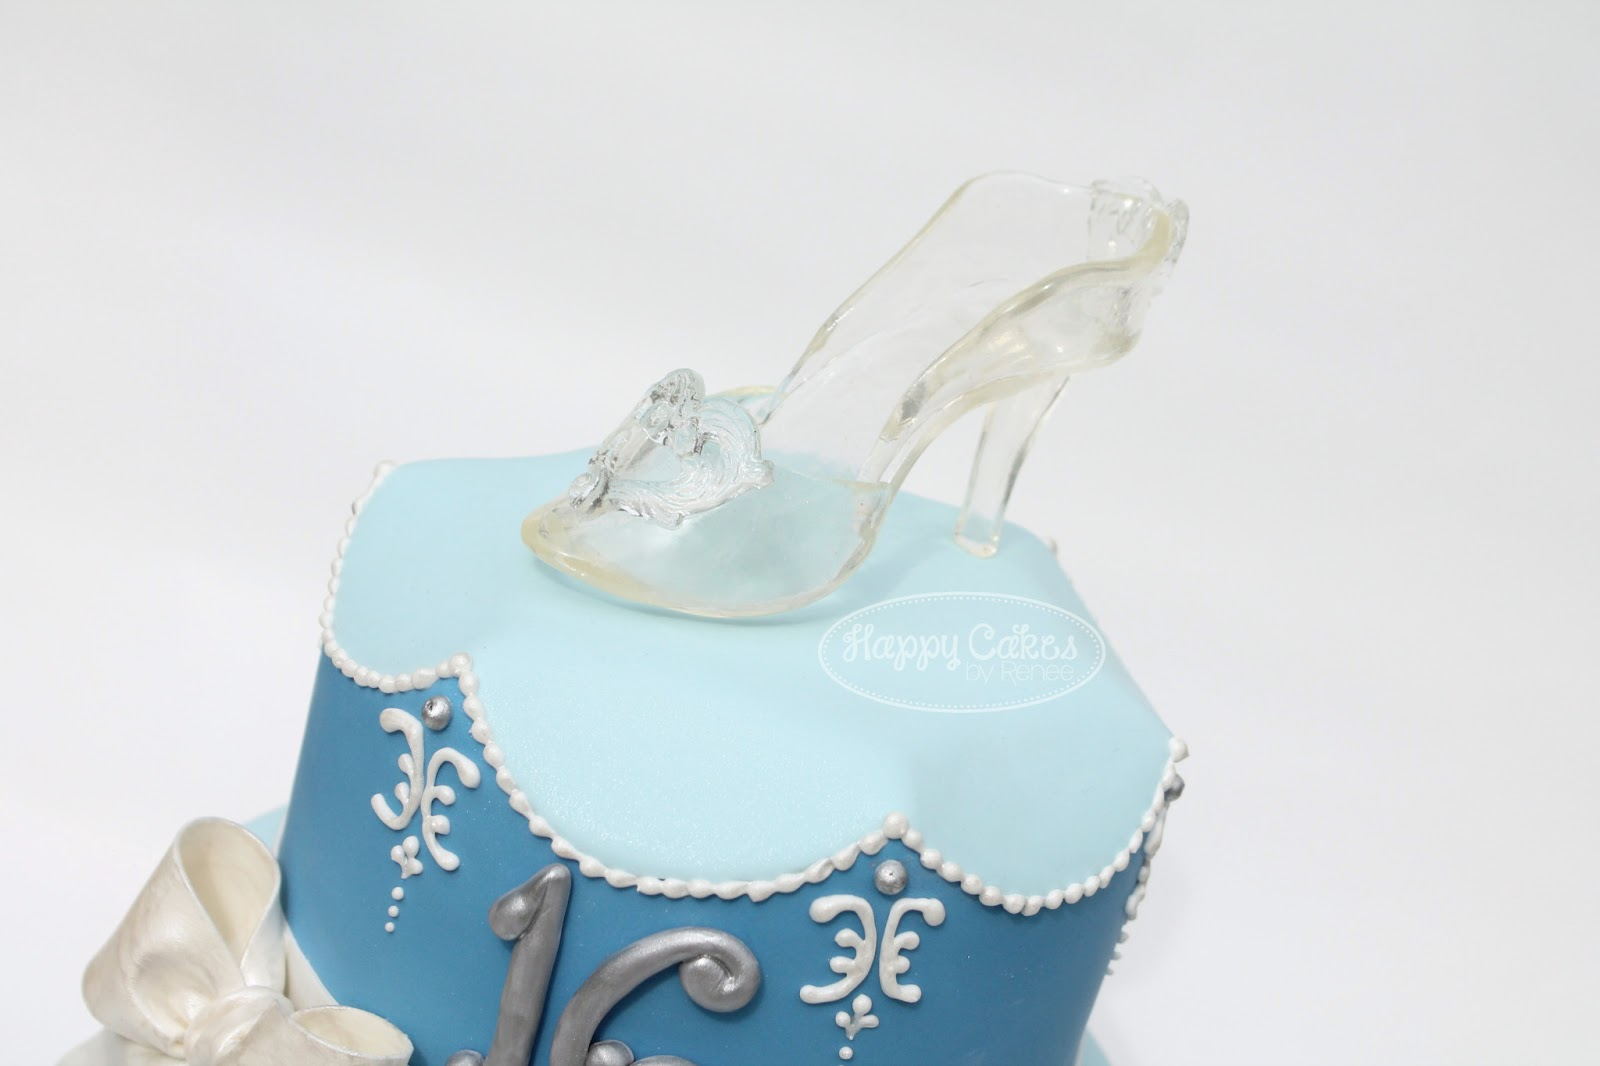 Cinderella Sweet 16 Birthday Cake Renee Conner Cake Design